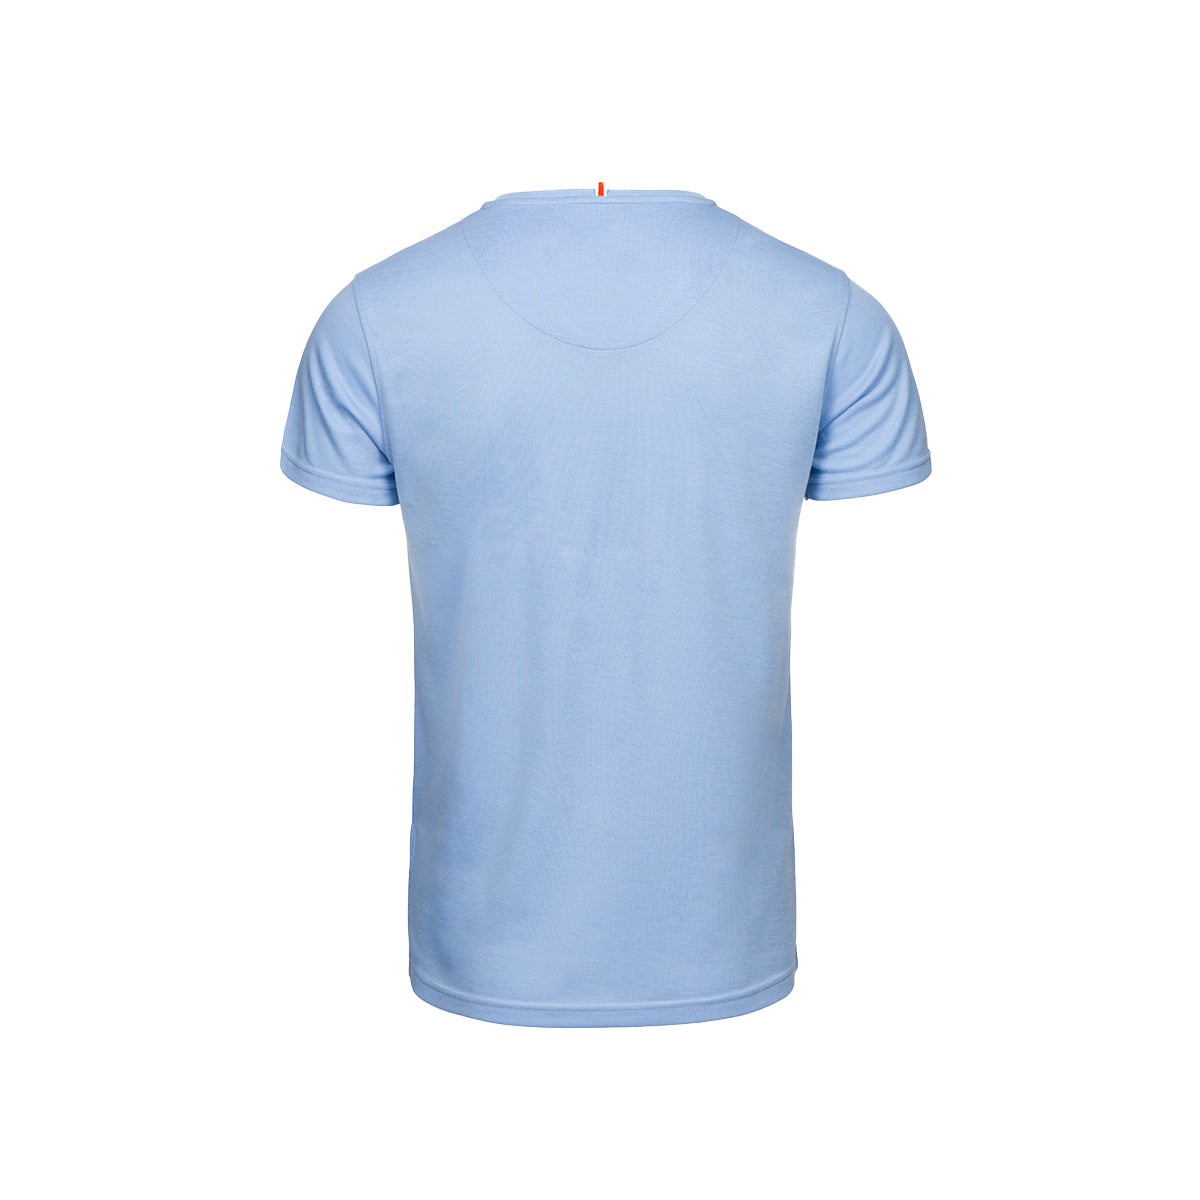 Citara O Neck T-Shirt - background::white,variant::sky